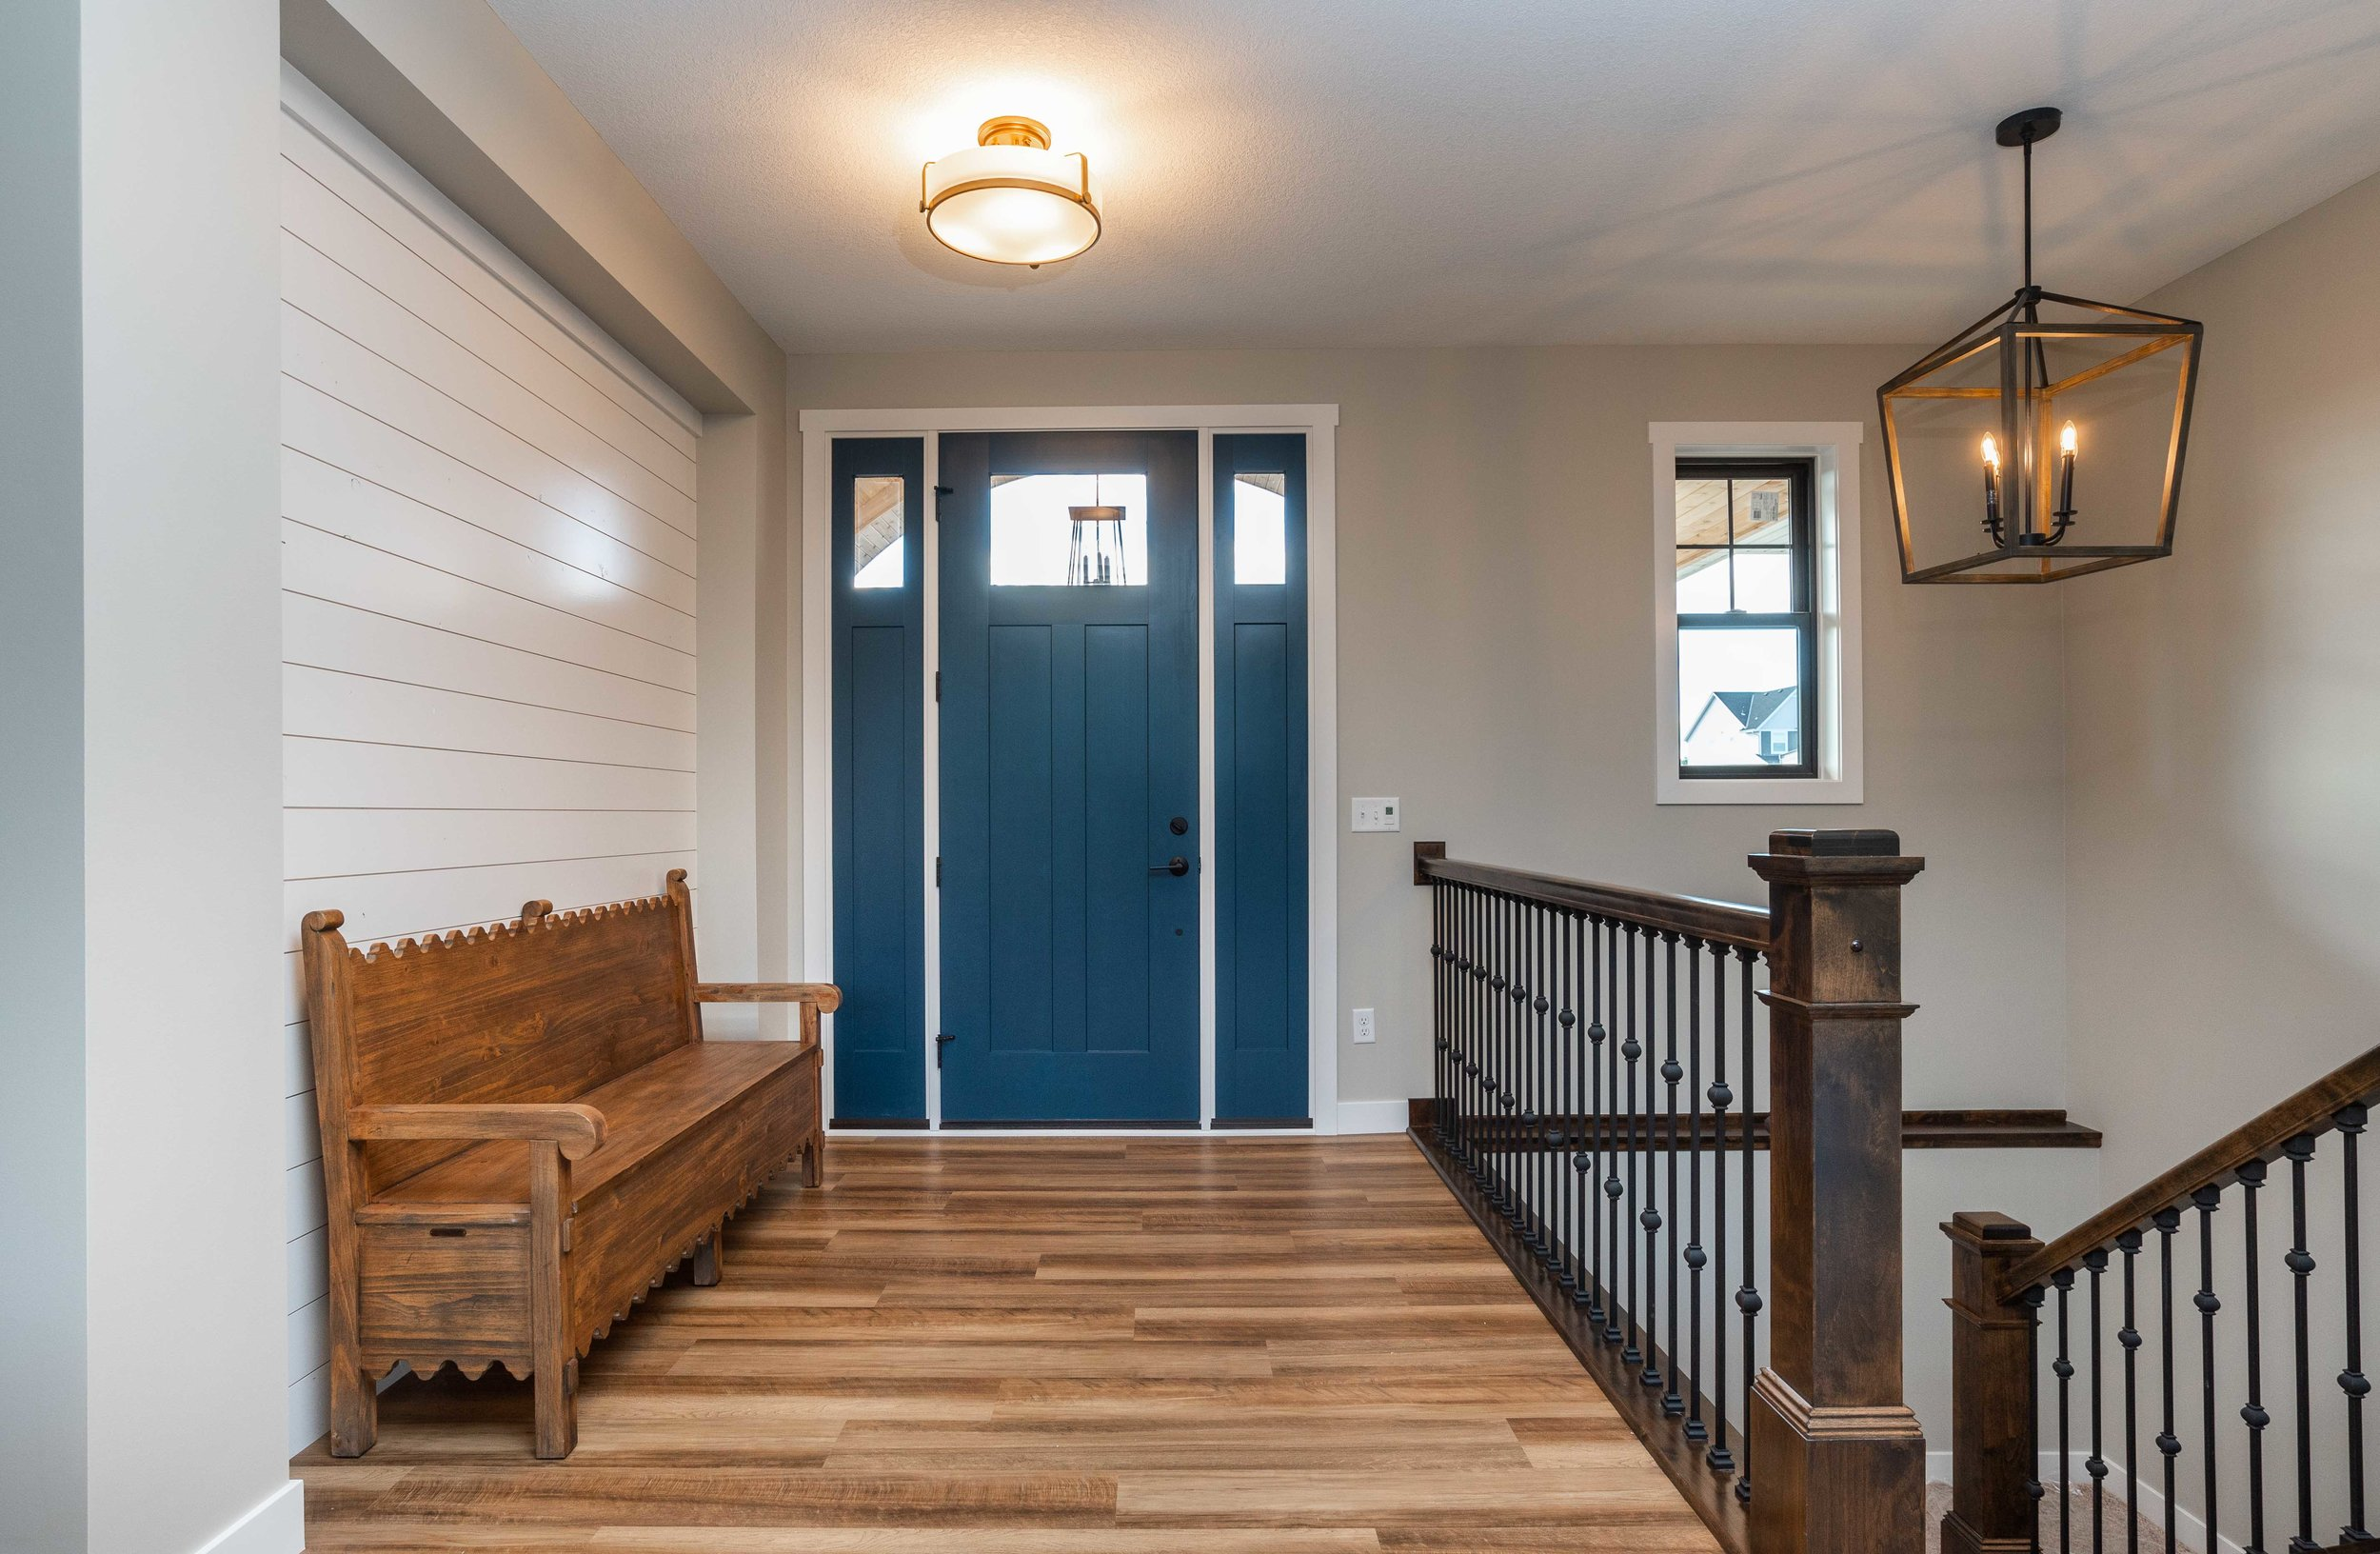 This beautiful blue door and ship lap wall make for a stunning entry way!